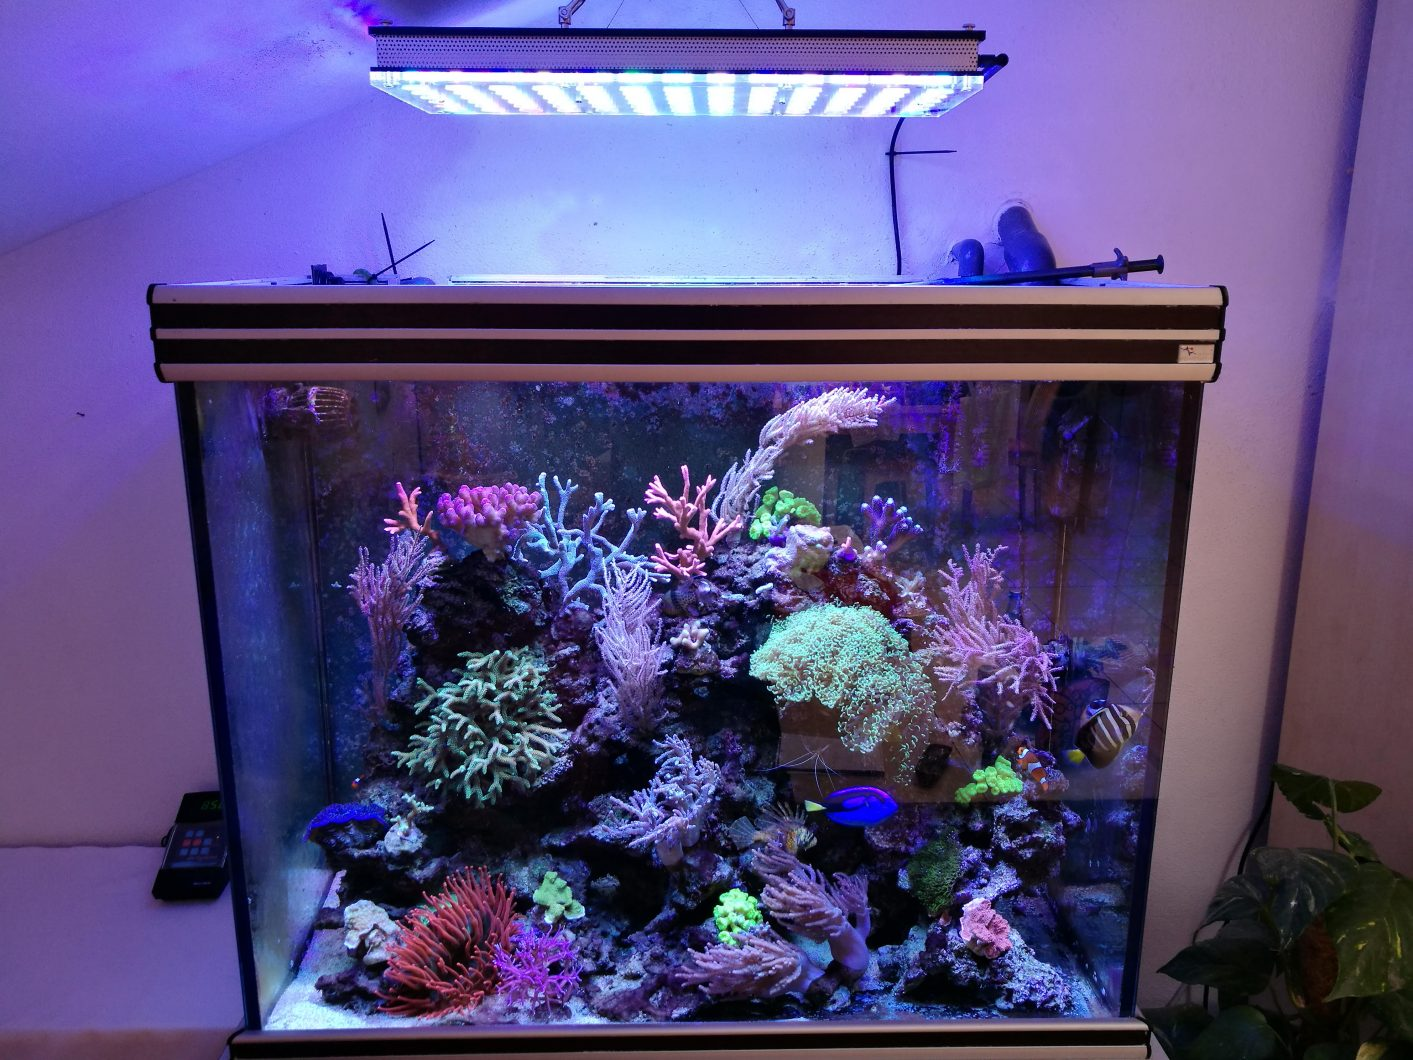 Orphek atlantik v4 reef aquarium LED lighting